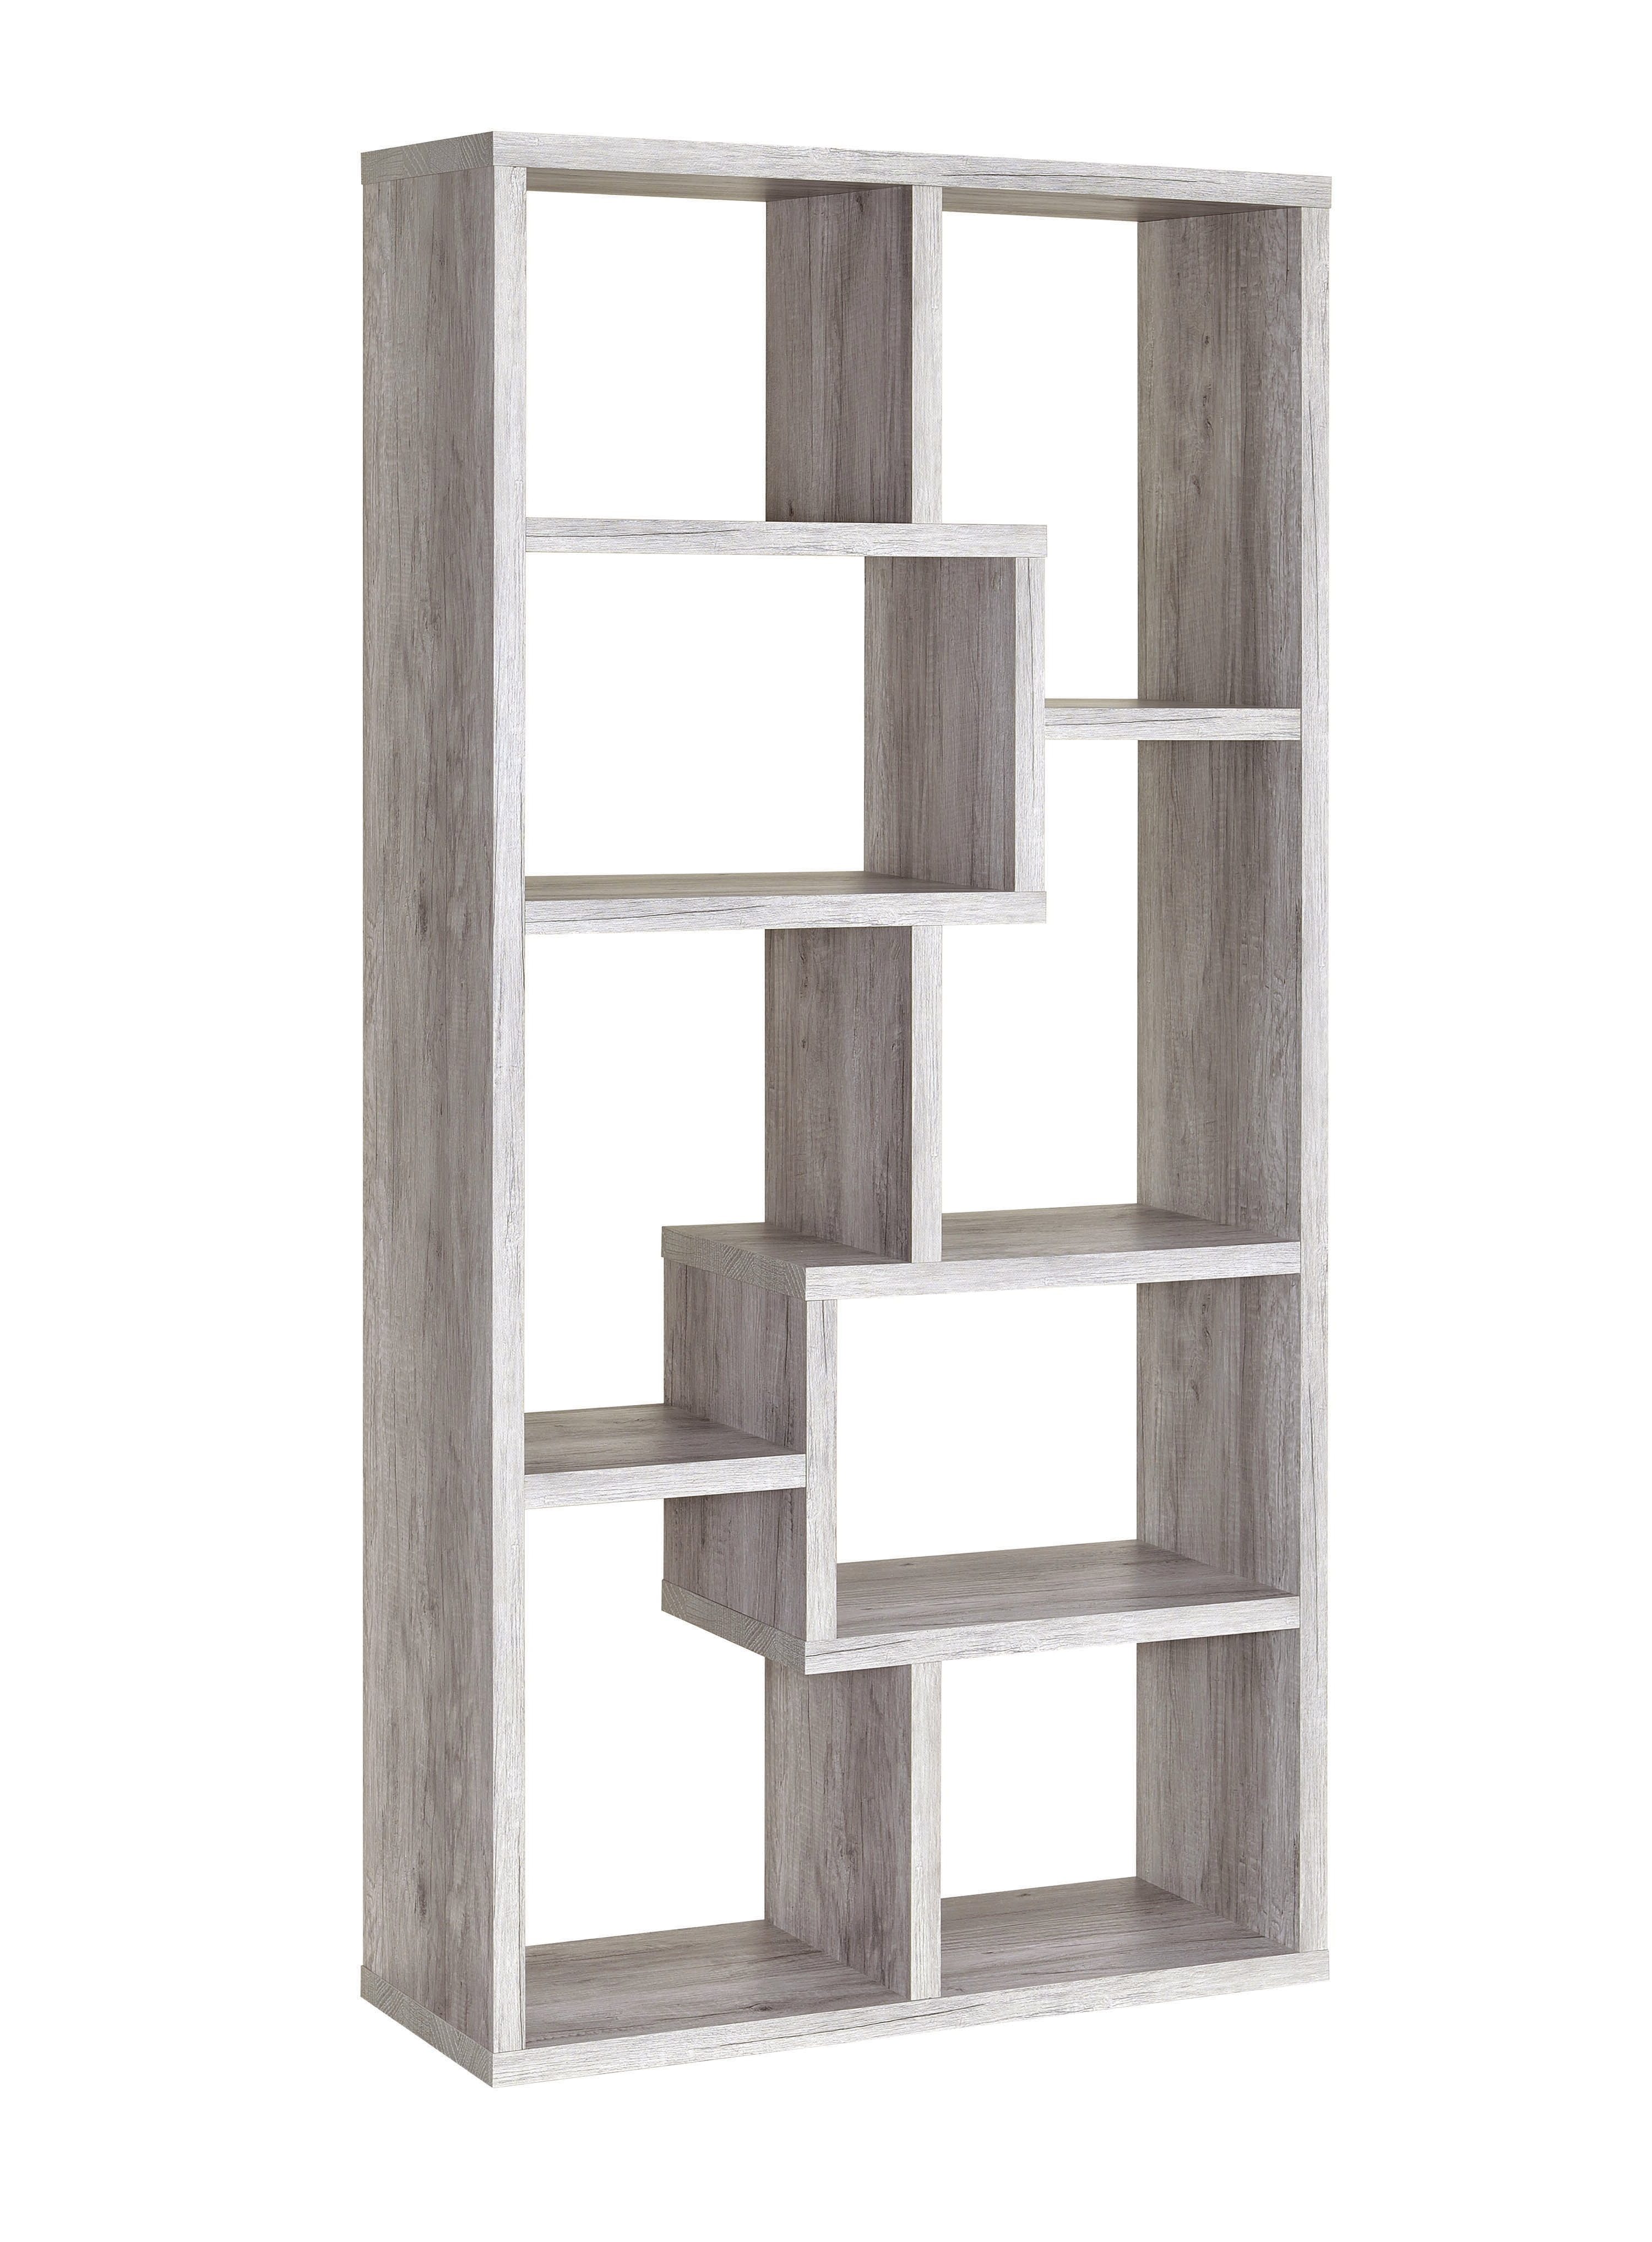 2020 Wrought Studio Harkless Geometric Bookcase For Harkless Standard Bookcases (View 7 of 20)